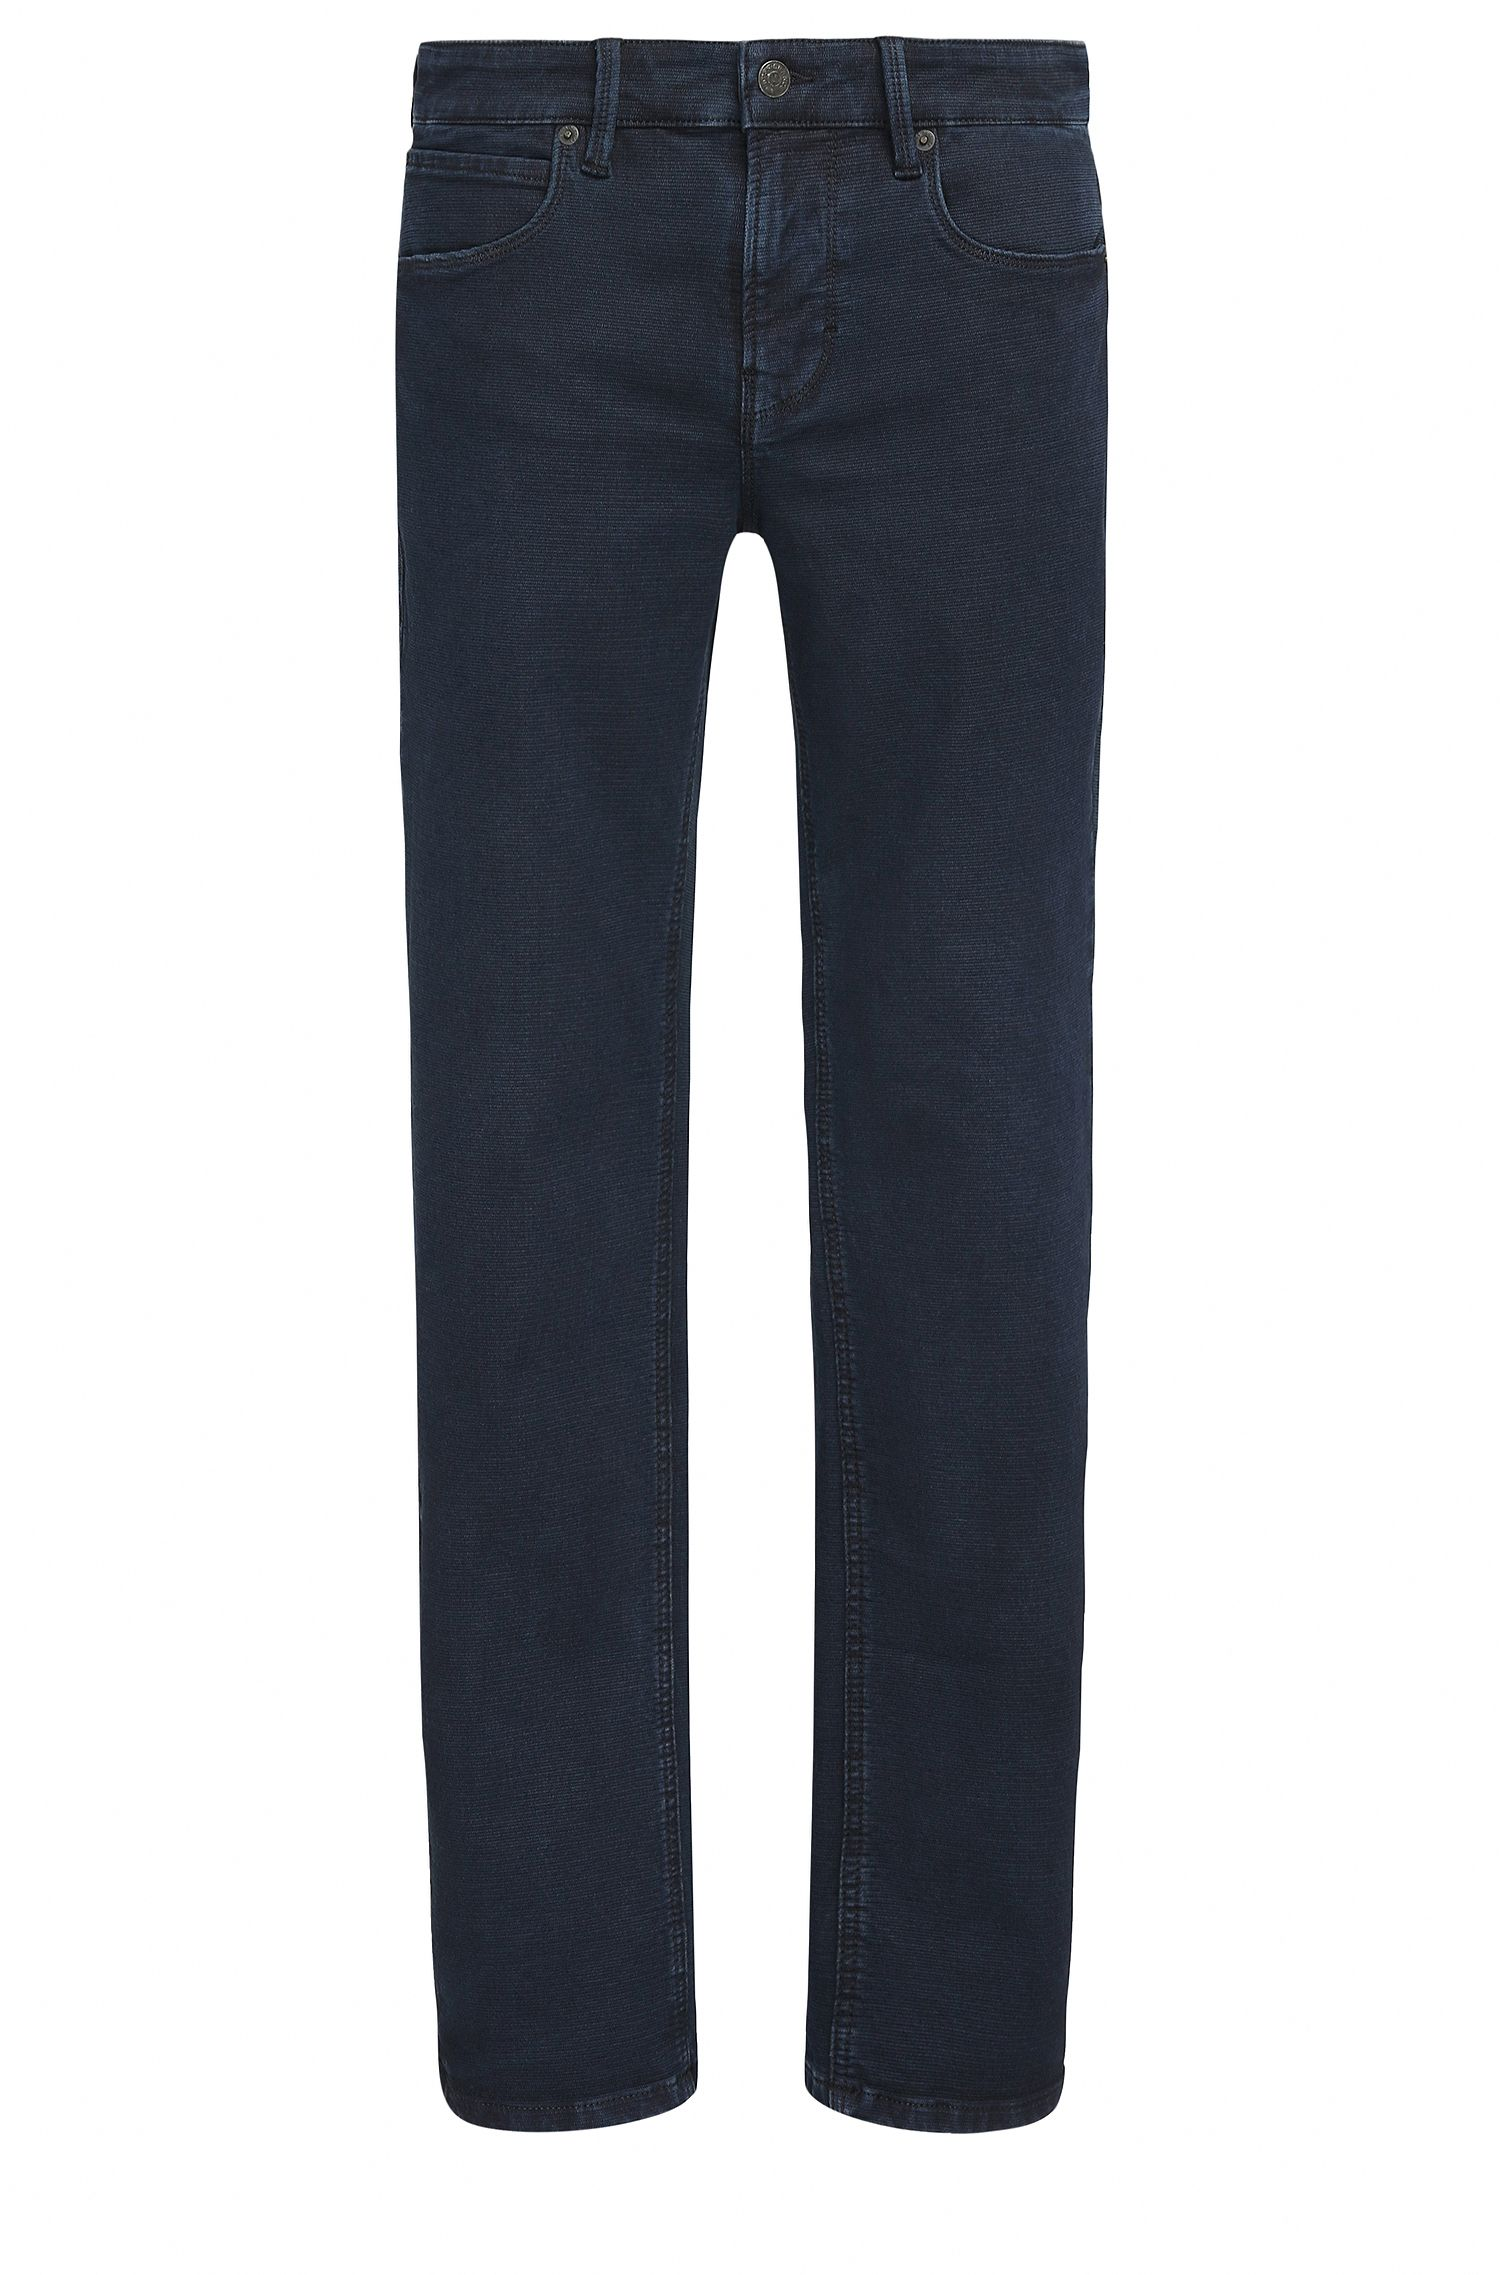 Jeans slim fit in denim dobby elasticizzato